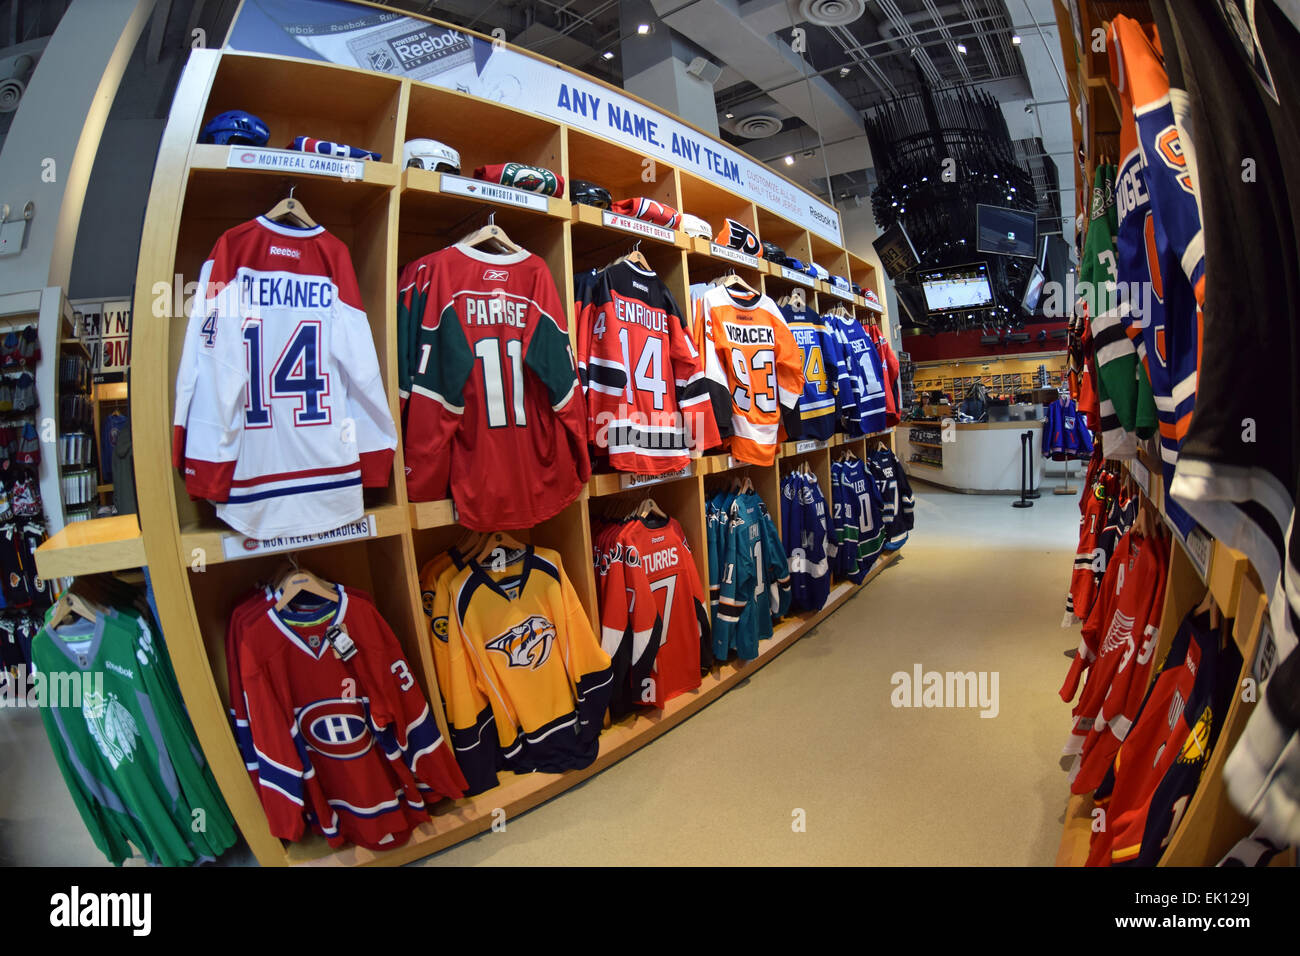 The For Of 80543726 Nhl Stock On Sweaters - Avenue Sale At Hockey Players Photo Alamy Store